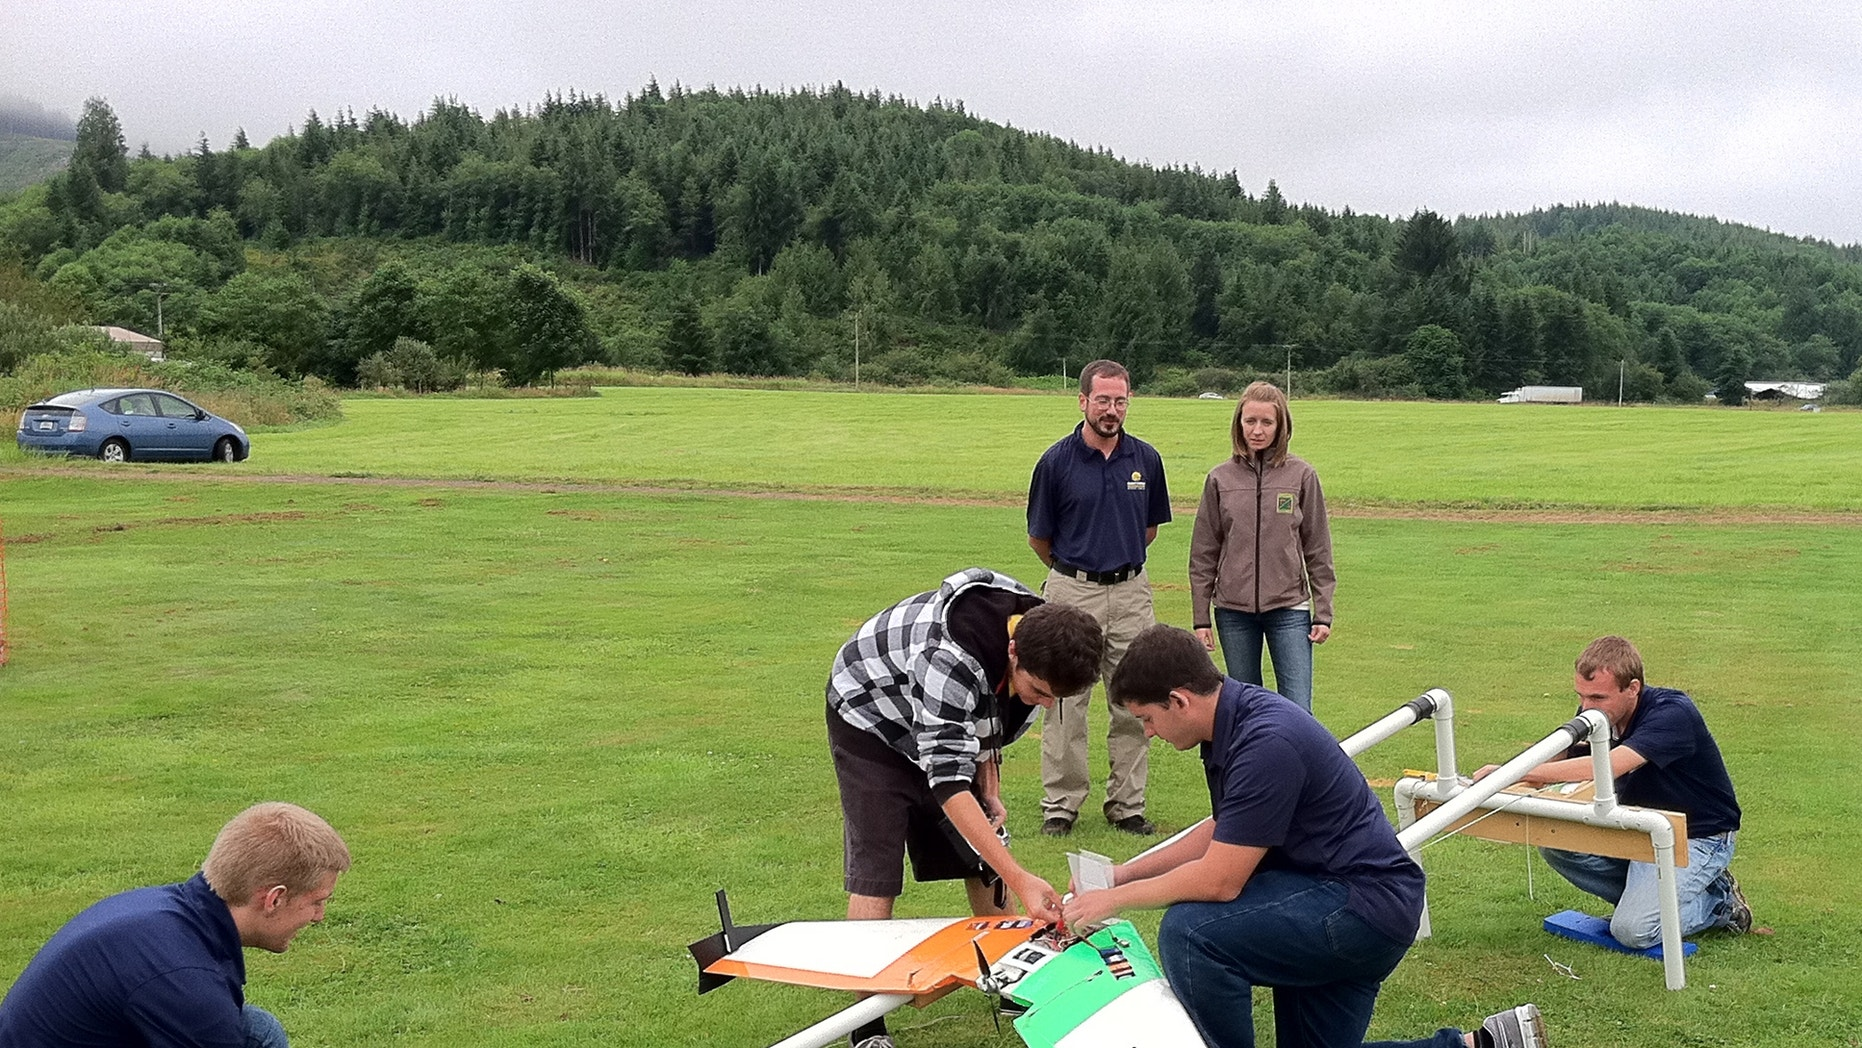 July 26, 2012: This photo provided by Embry-Riddle Aeronautical University shows students demonstrating the launch catapult for their drone aircraft near Tillamook, Ore.